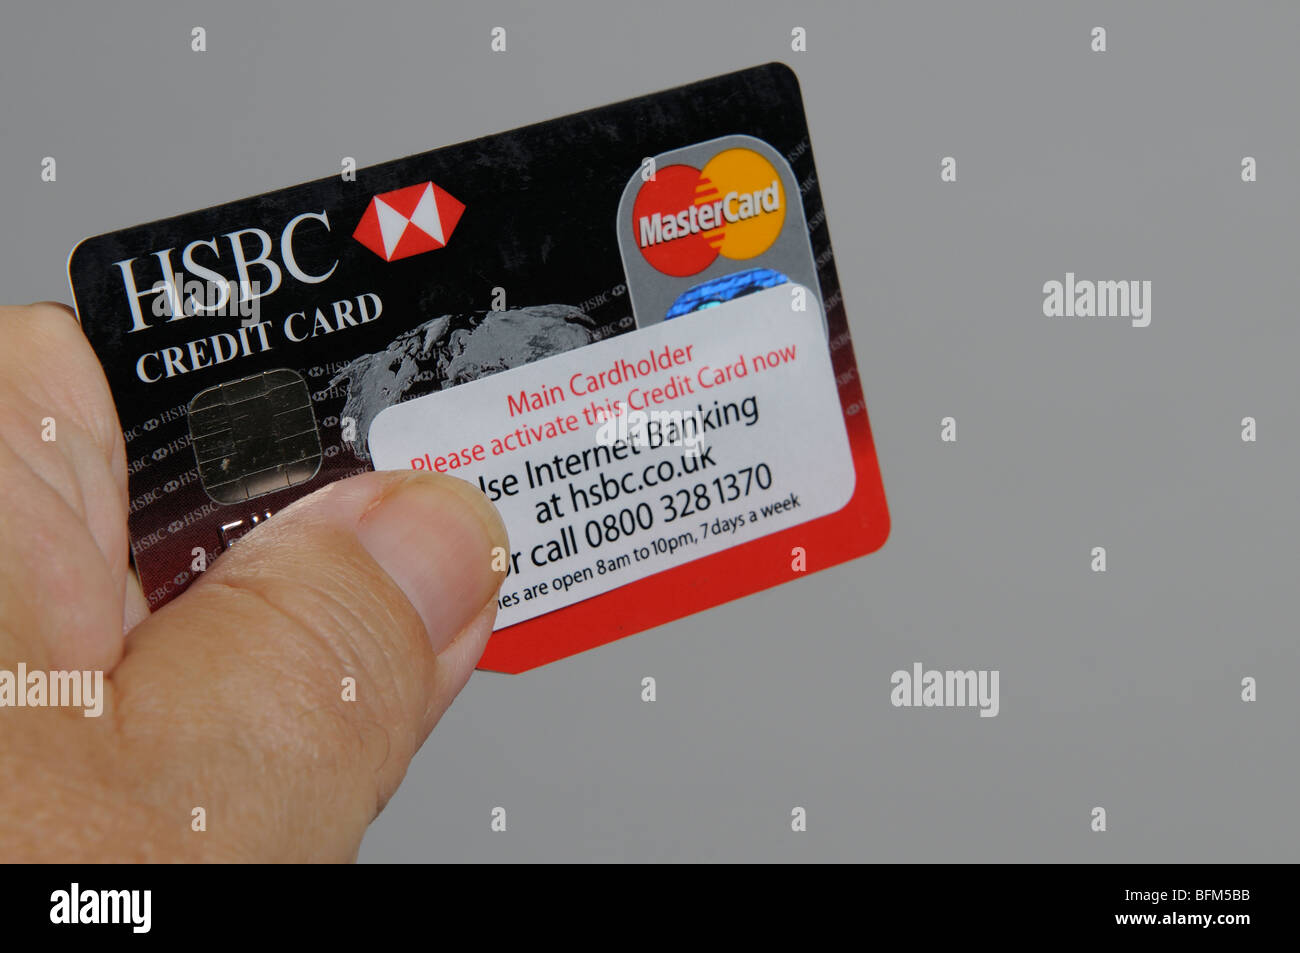 How to activate a credit card 23